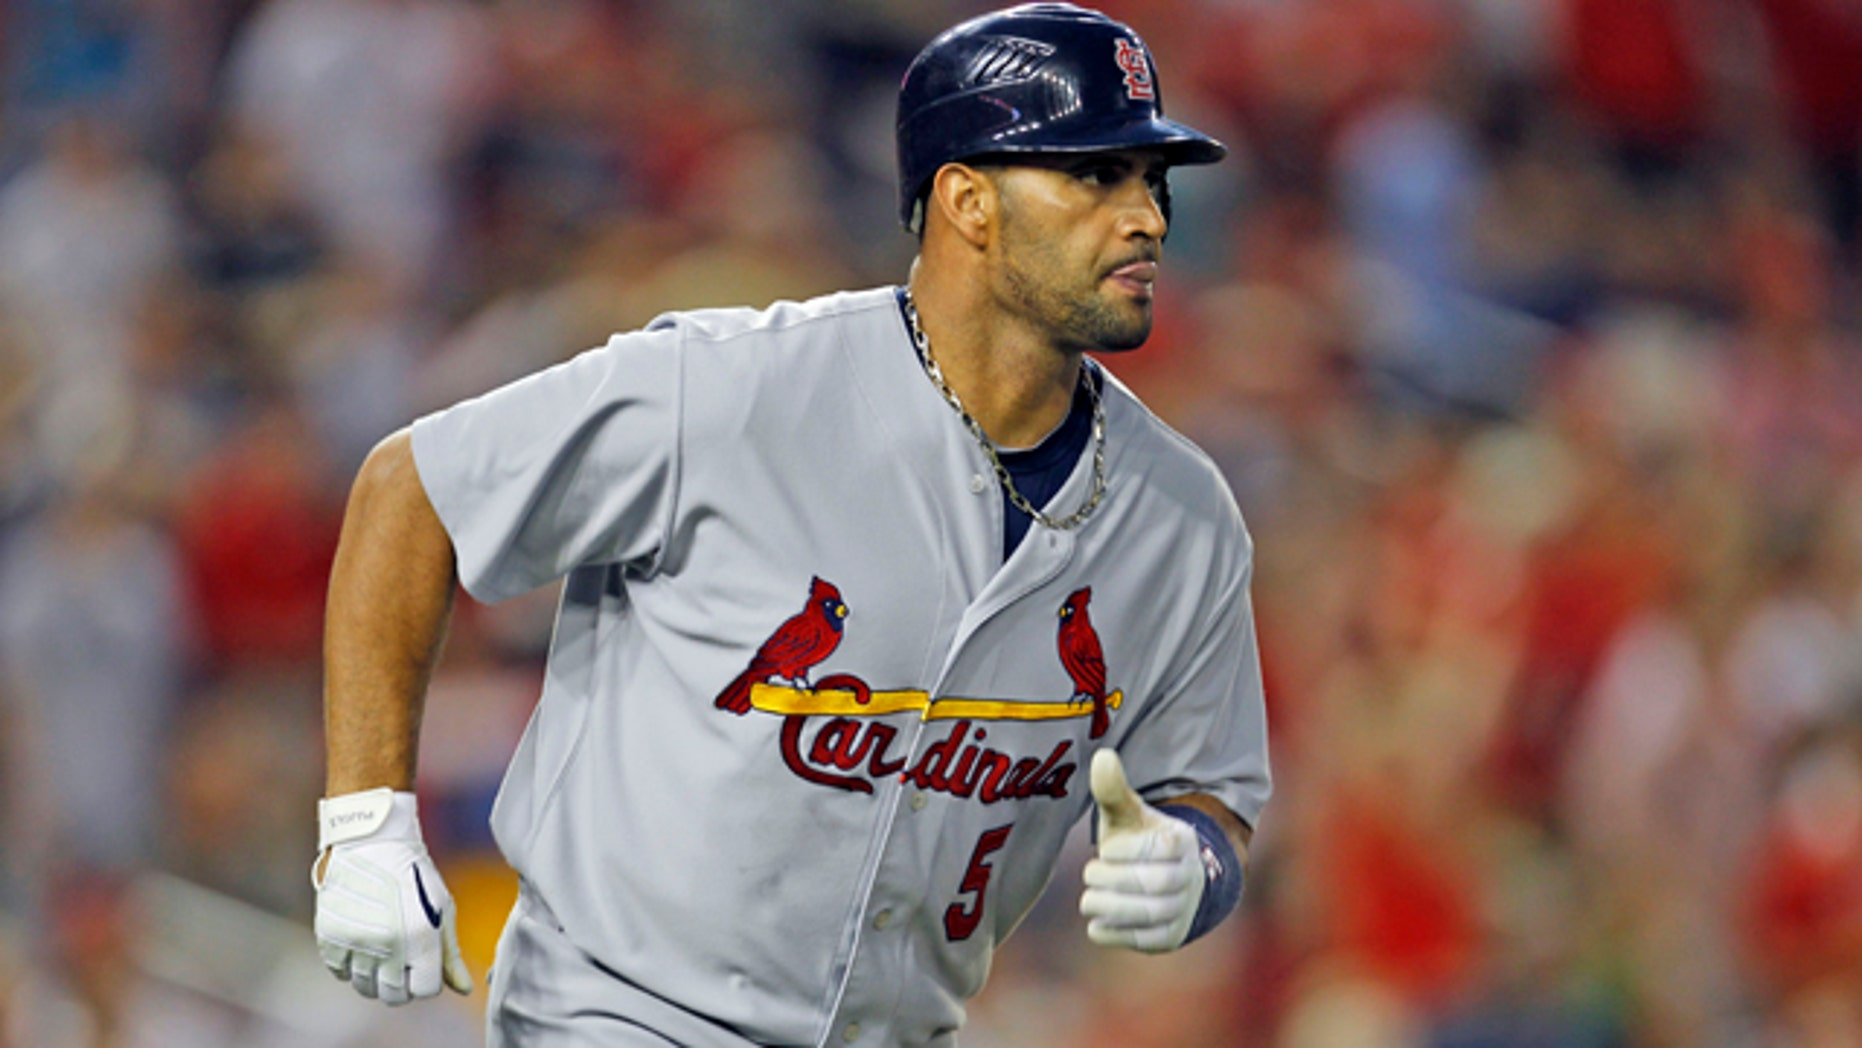 This Aug. 26, 2010, file photo shows St. Louis Cardinals' Albert Pujols running the bases after his 400th home run.